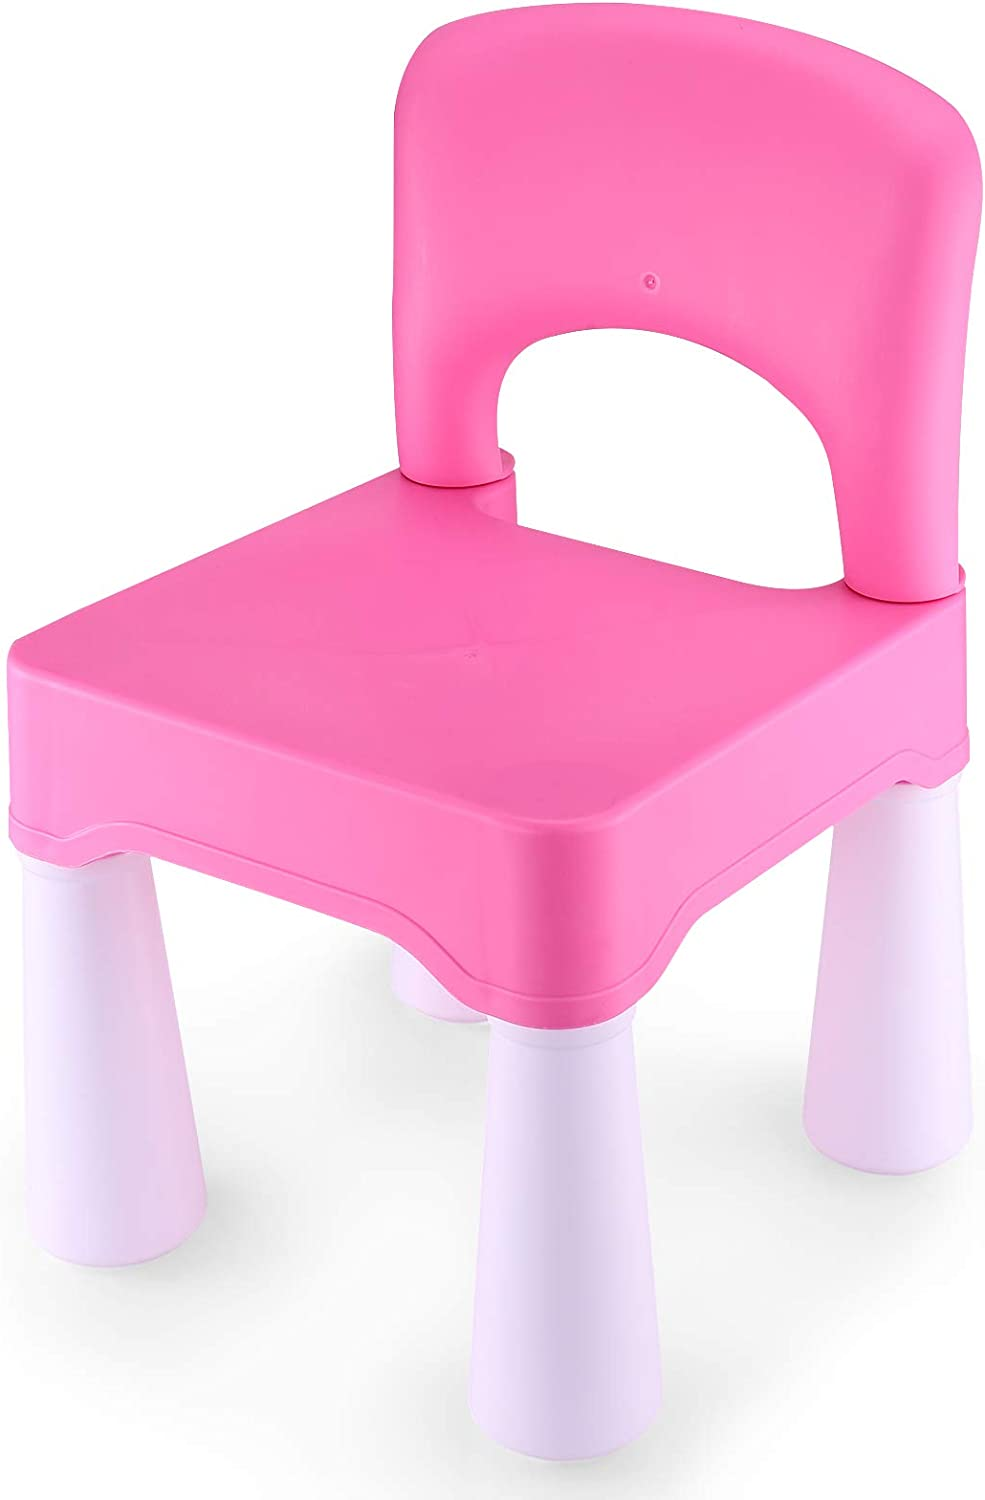 BITMEE Kids Chair, Toddler Chair, Toddler Chairs for Boys and Girls, Ergonomic Design, Eco-Friendly Durable Plastic, Indoor or Outdoor Use Kids Chairs for Boys and Girls- Barbie Pink